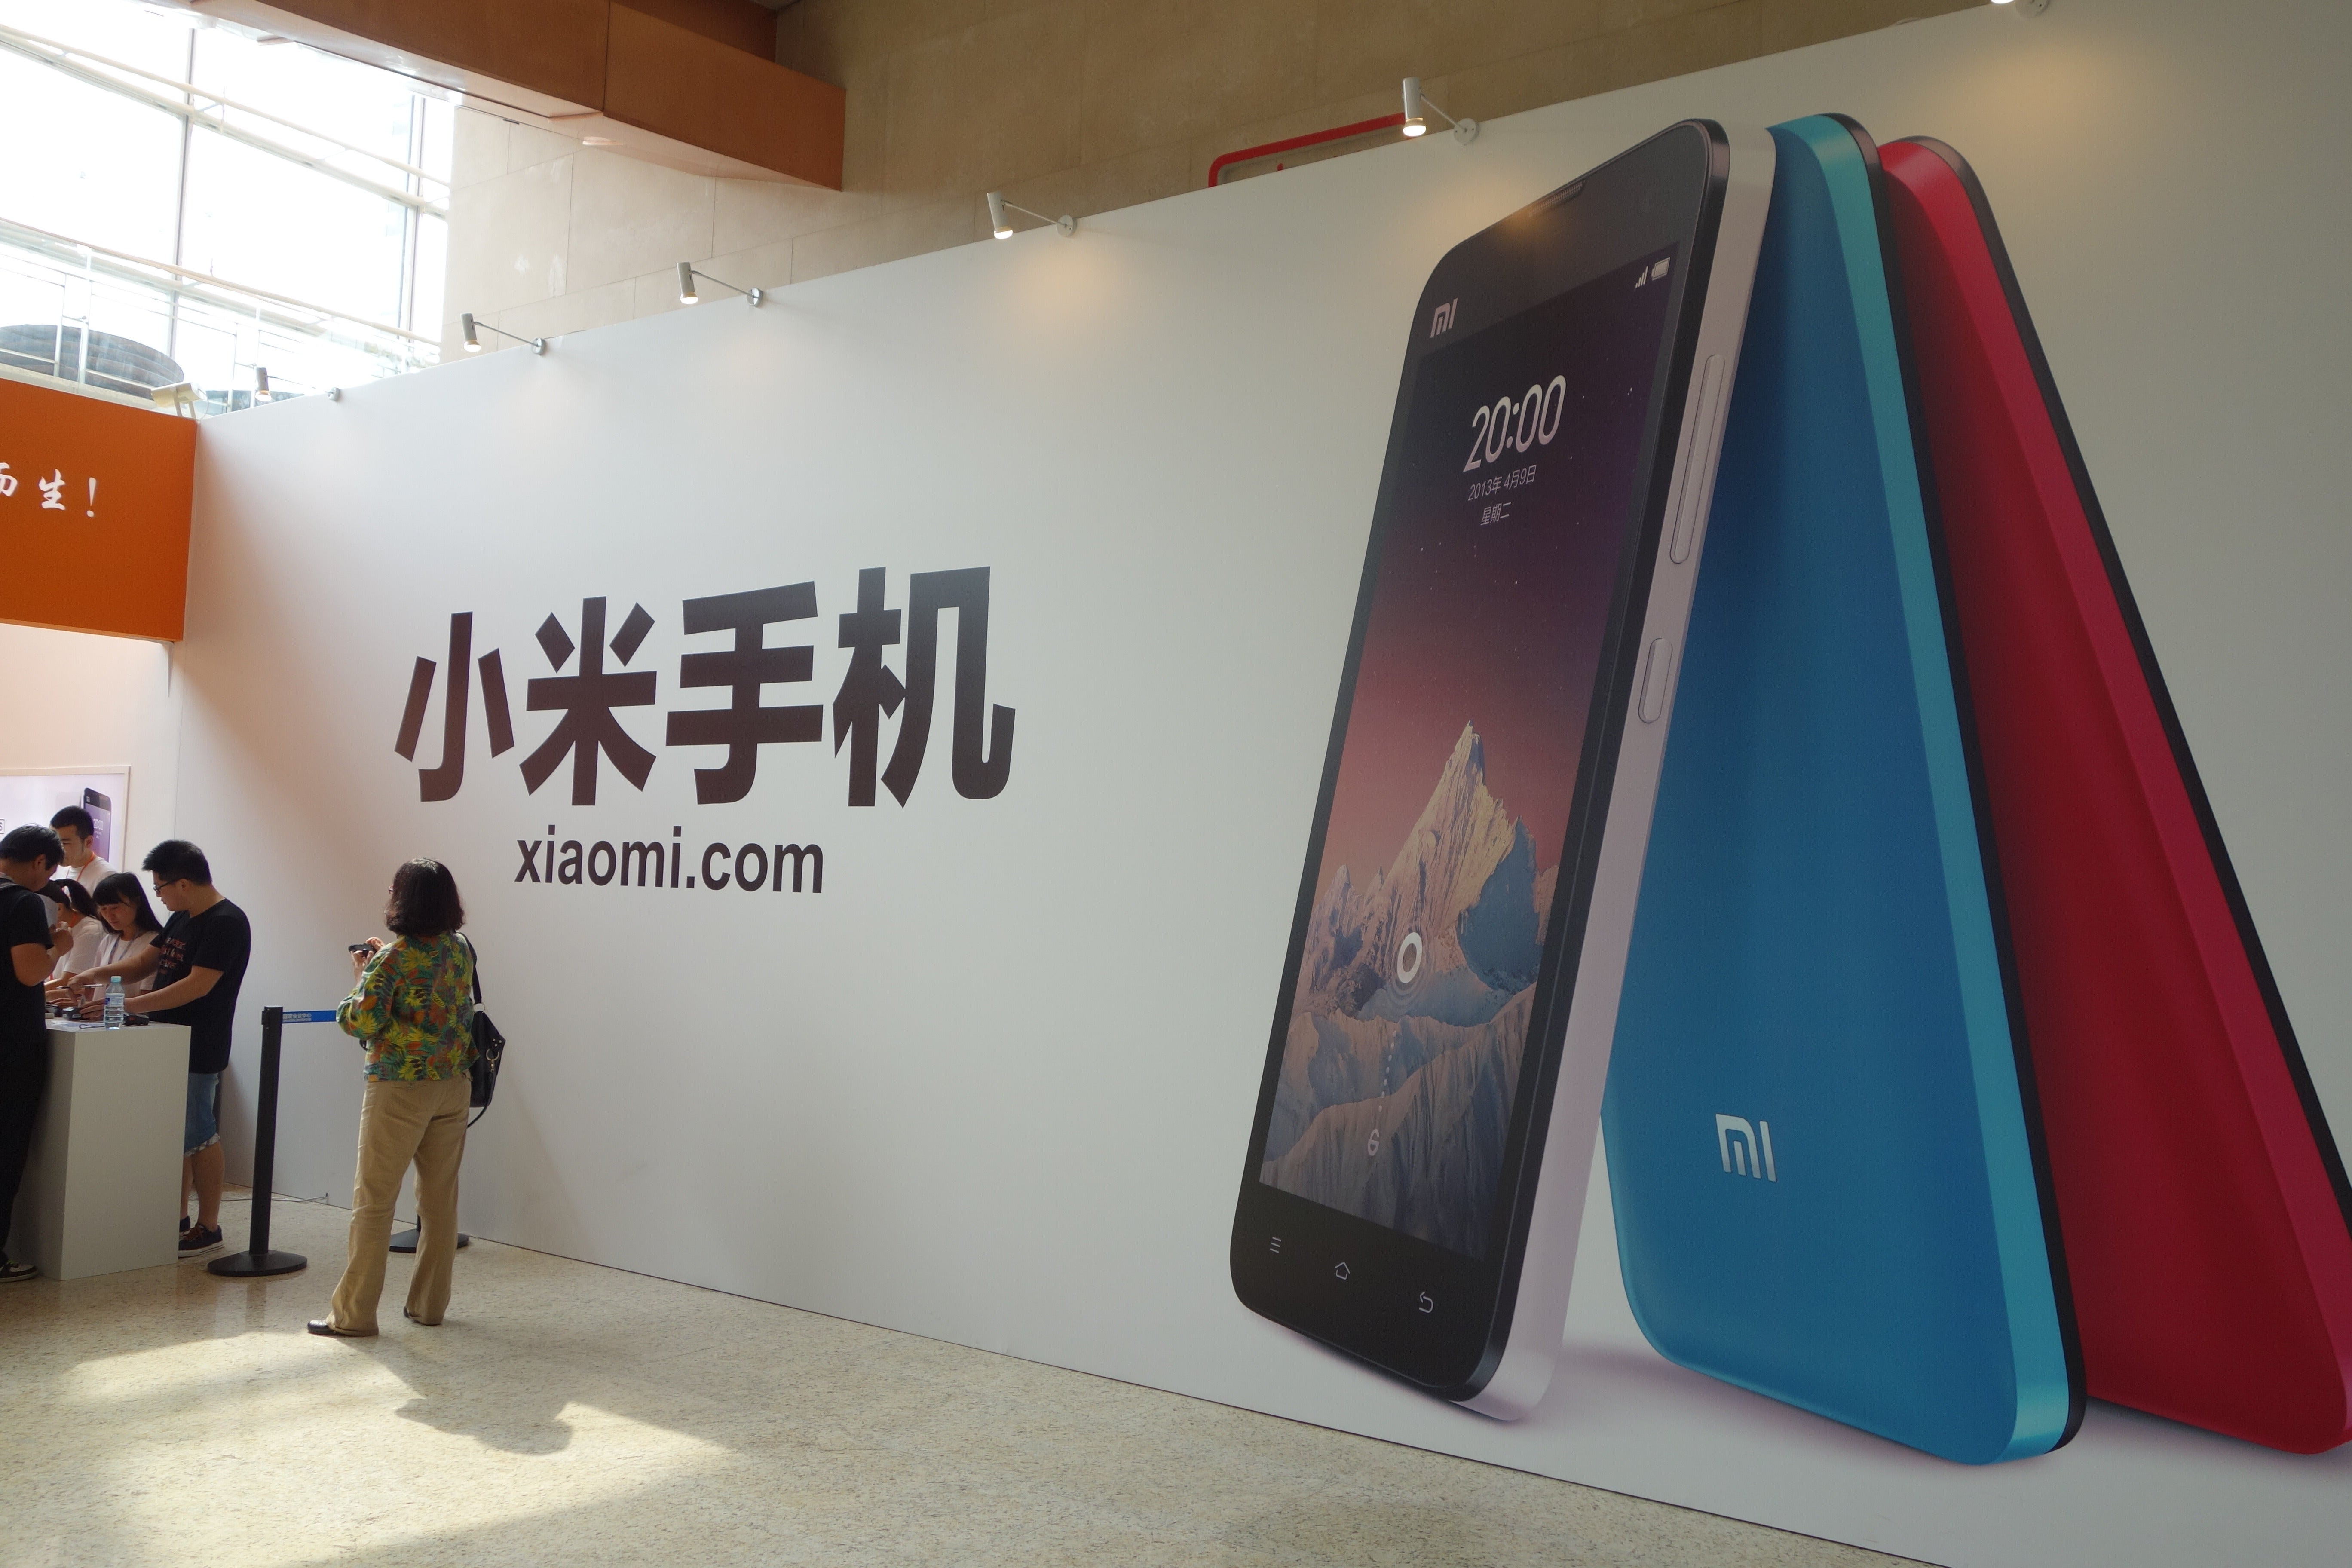 Why Are Xiaomi Phones So Cheap Pcworld Gadget Handphone Poster